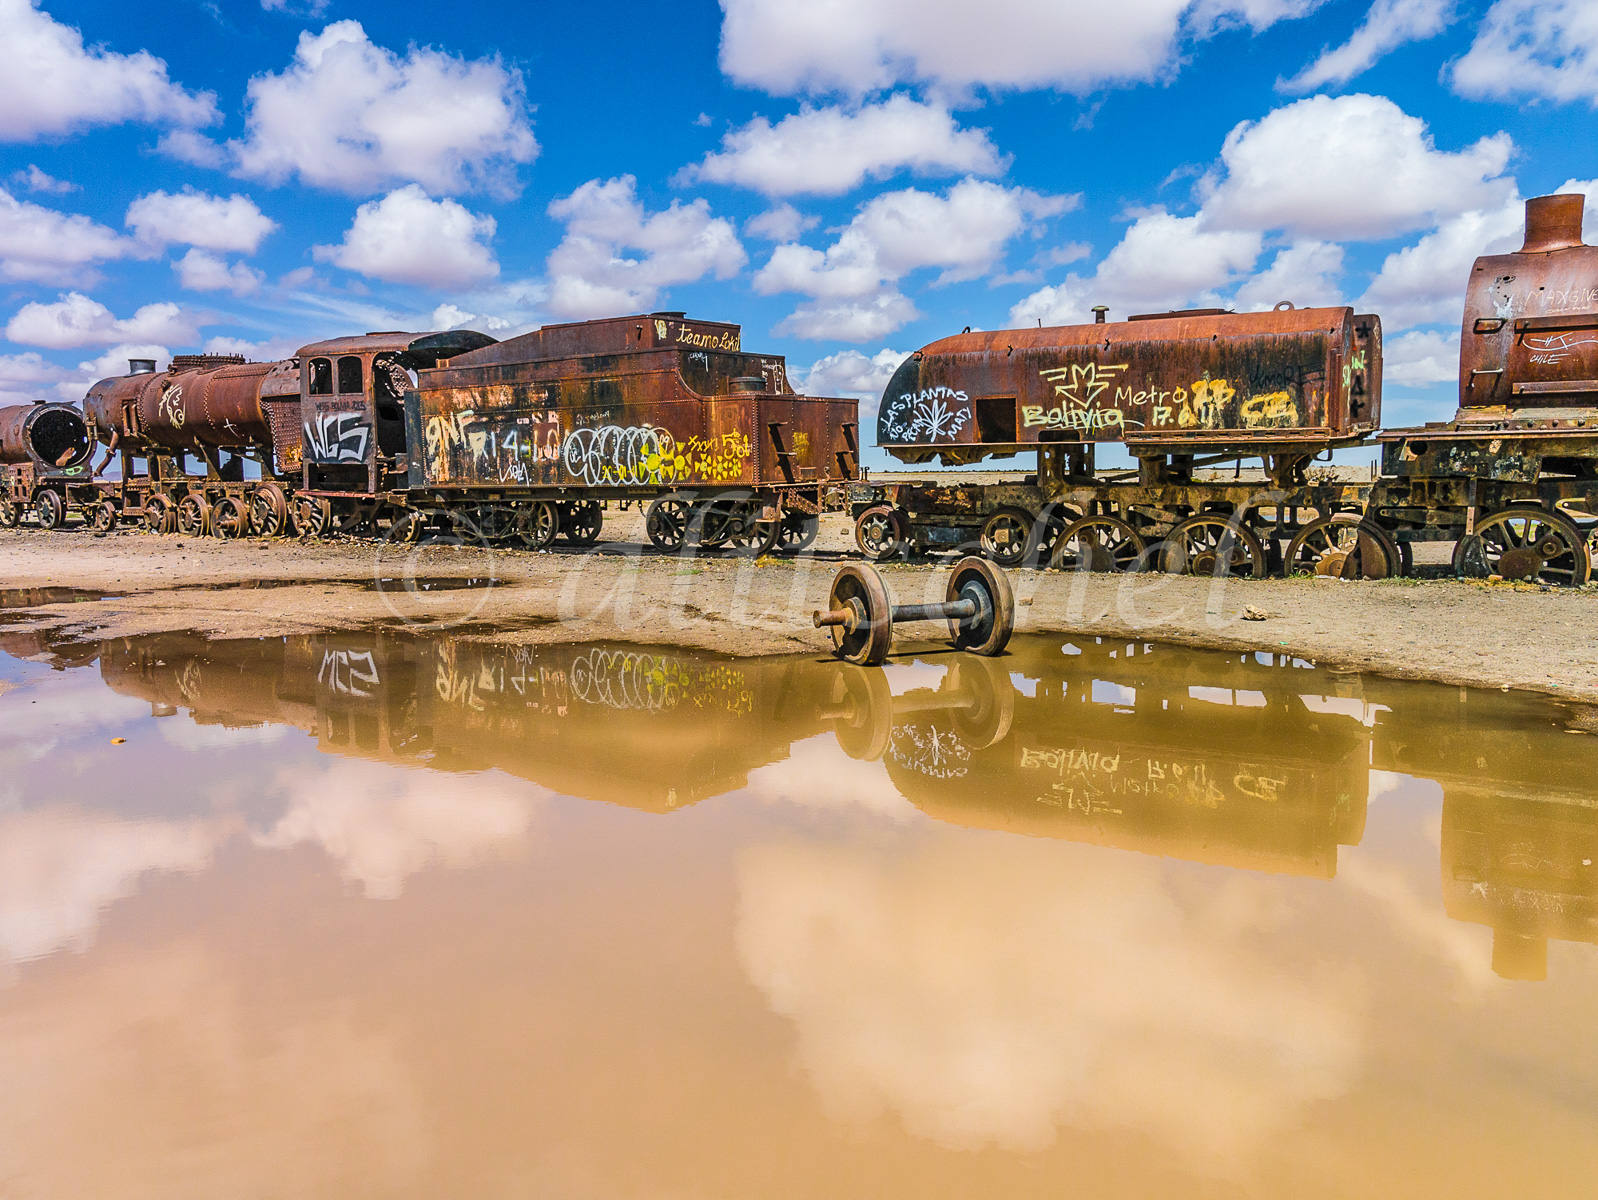 Bolivian train cemetery consisting of old steam locomotives and antique trains abandoned in Salar de Uyuni